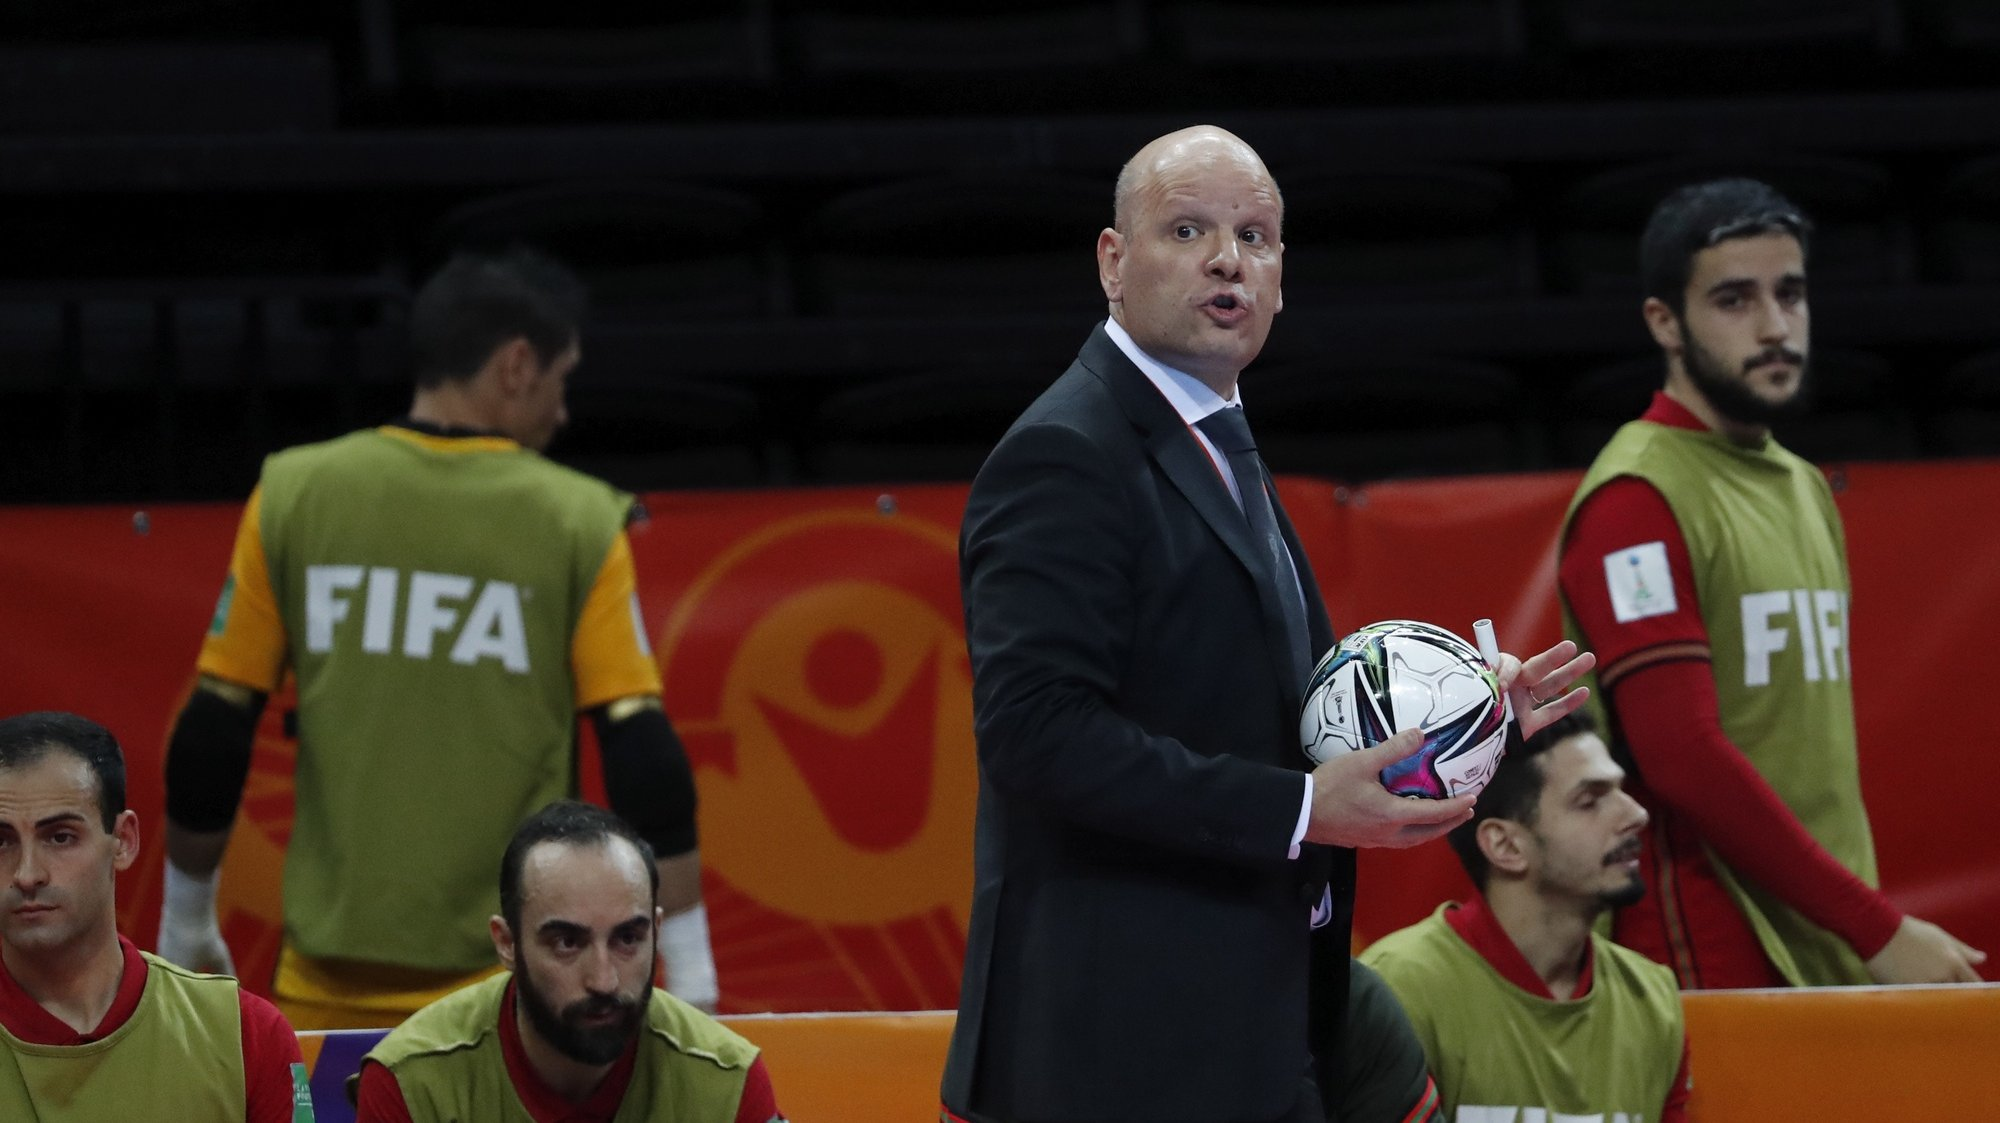 epa09504217 Head coach of Portugal's national futsal team Jorge Braz reacts during FIFA Futsal World Cup Lithuania 2021 final between Argentina and Portugal in Kaunas, Lithuania, 03 October 2021.  EPA/TOMS KALNINS